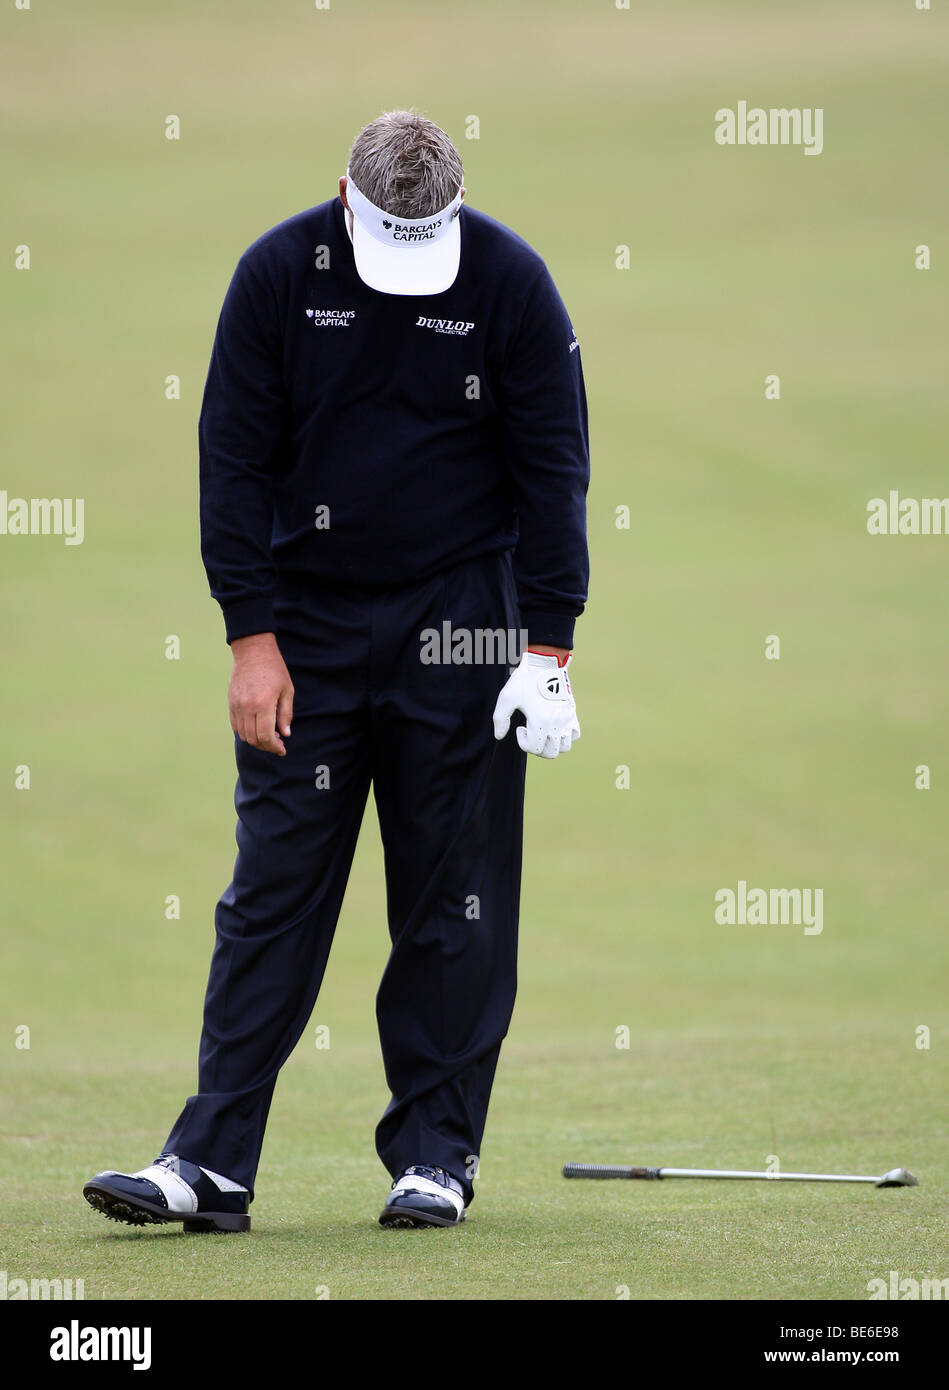 DARREN CLARKE ON 7TH FAIRWAY THE OPEN TURNBERRY 2009 TURNBERRY AYRSHIRE SCOTLAND 18 July 2009 - Stock Image